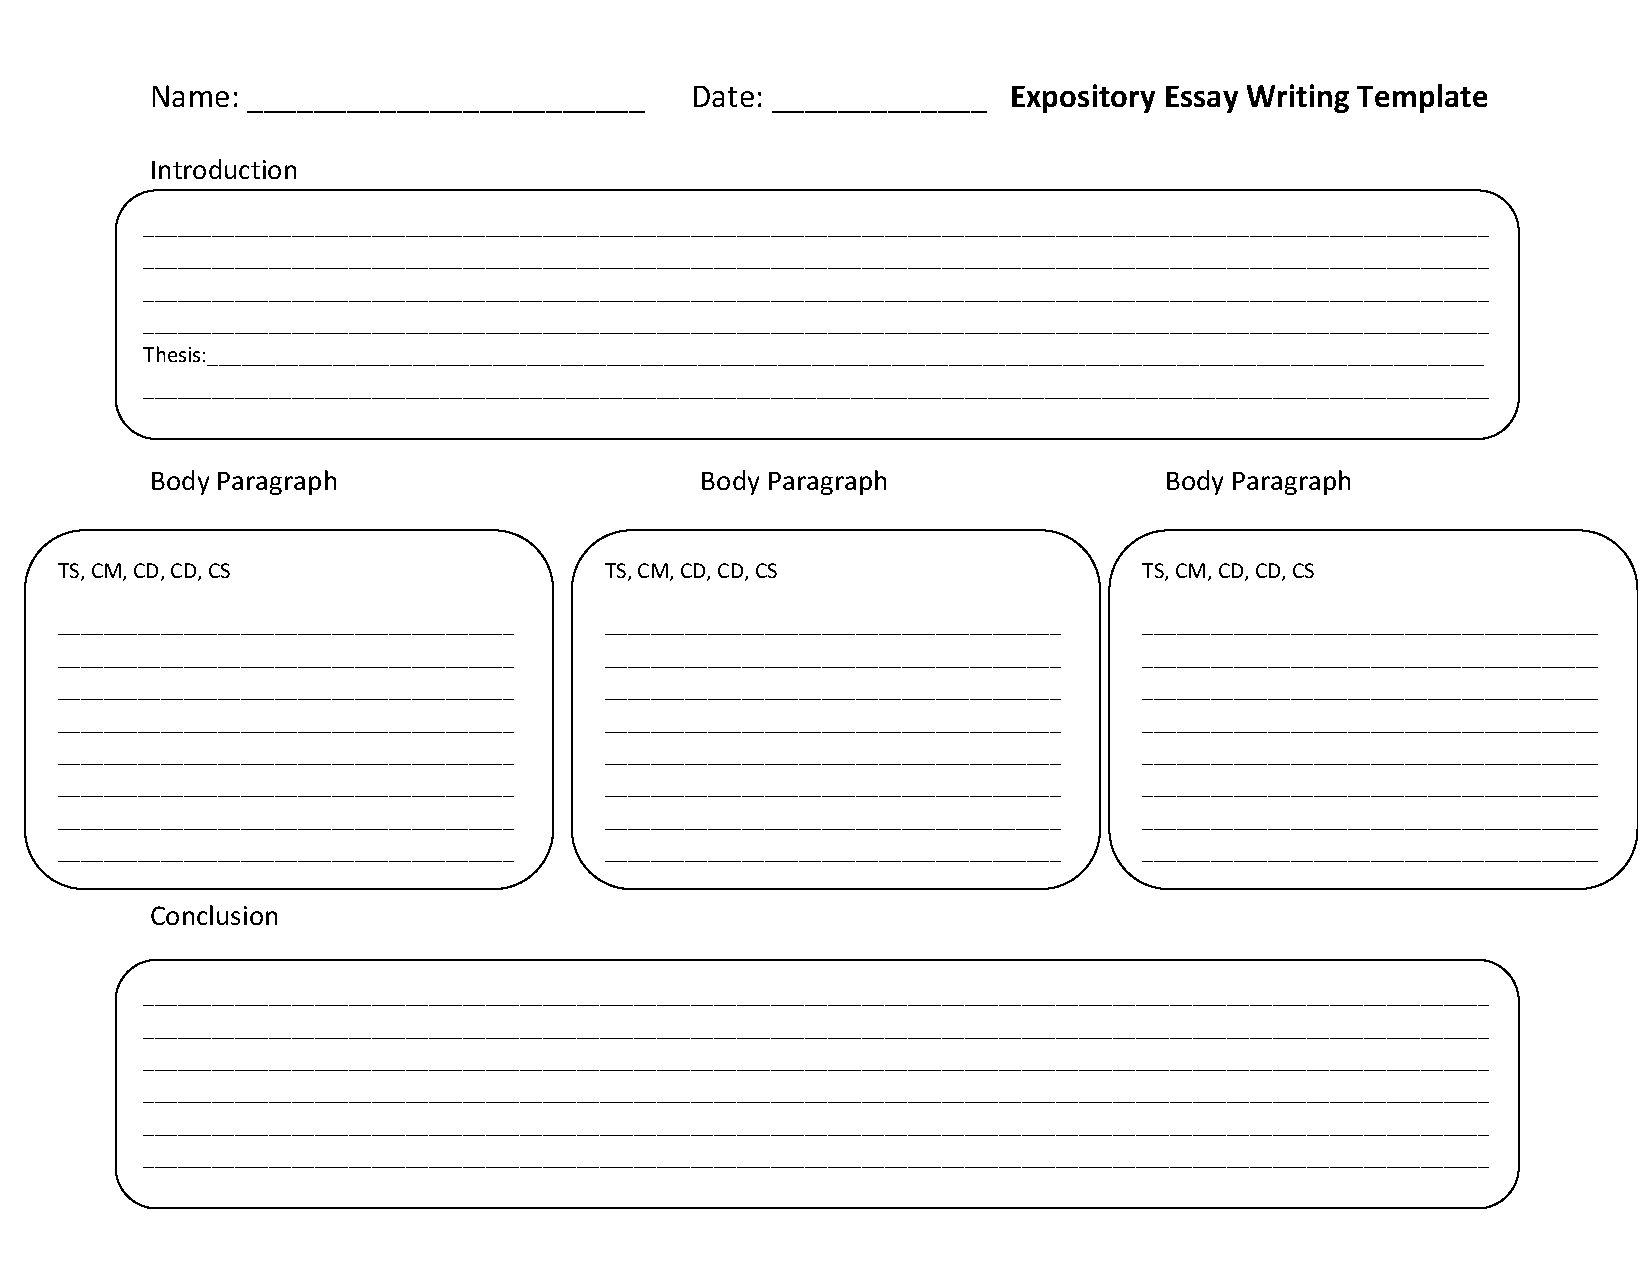 Format of Expository Essay